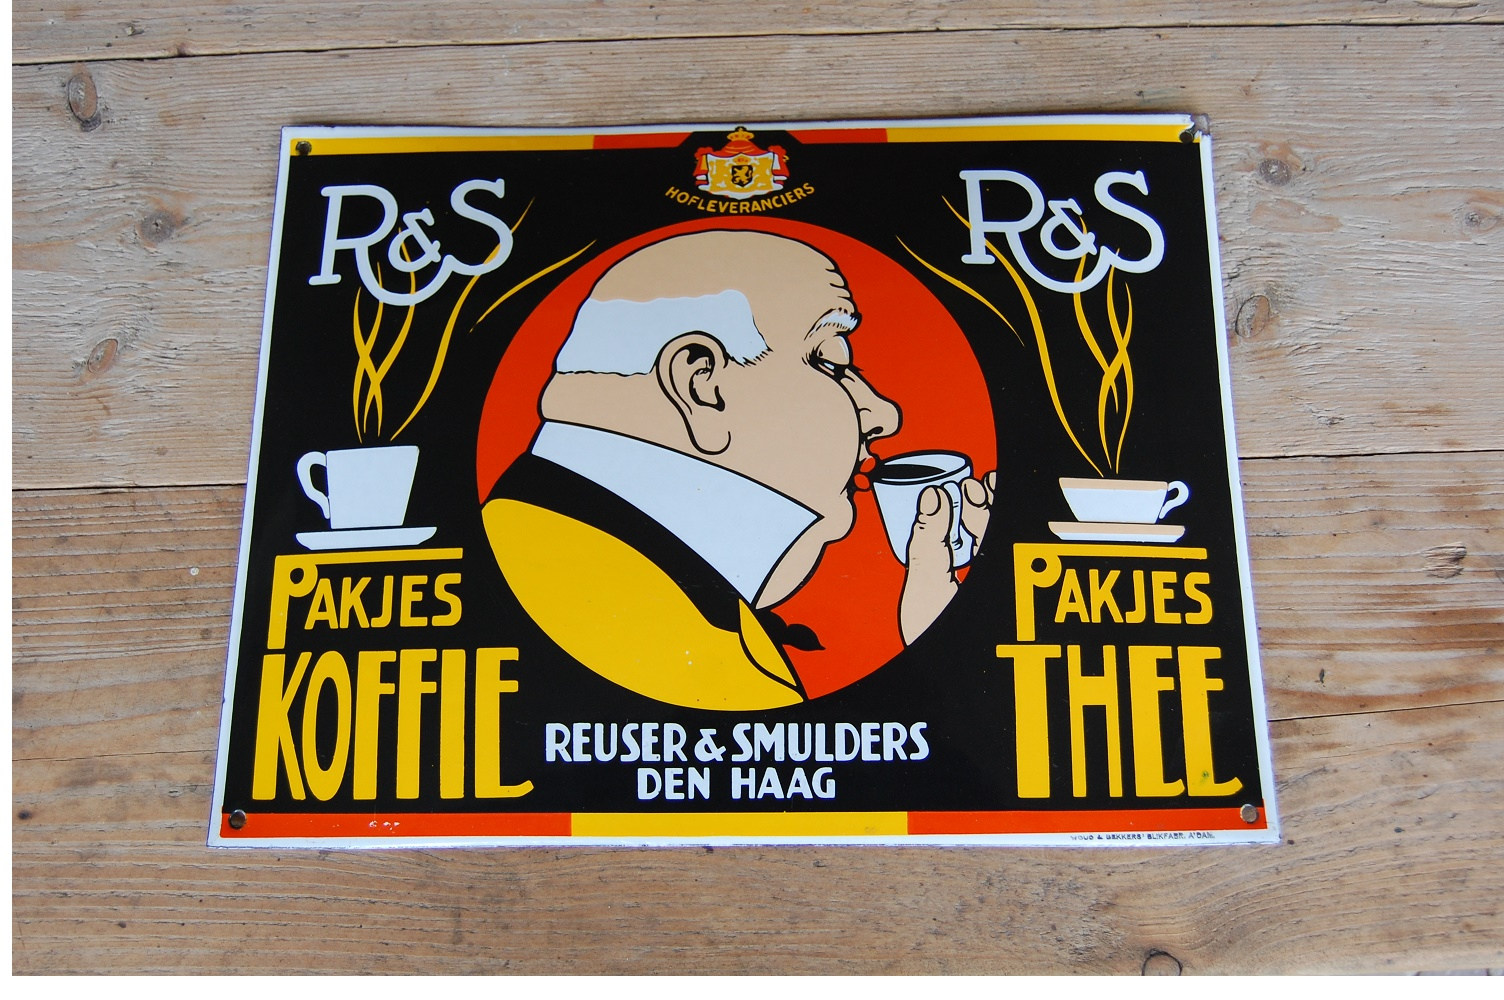 R&S koffie thee emaille reclamebord